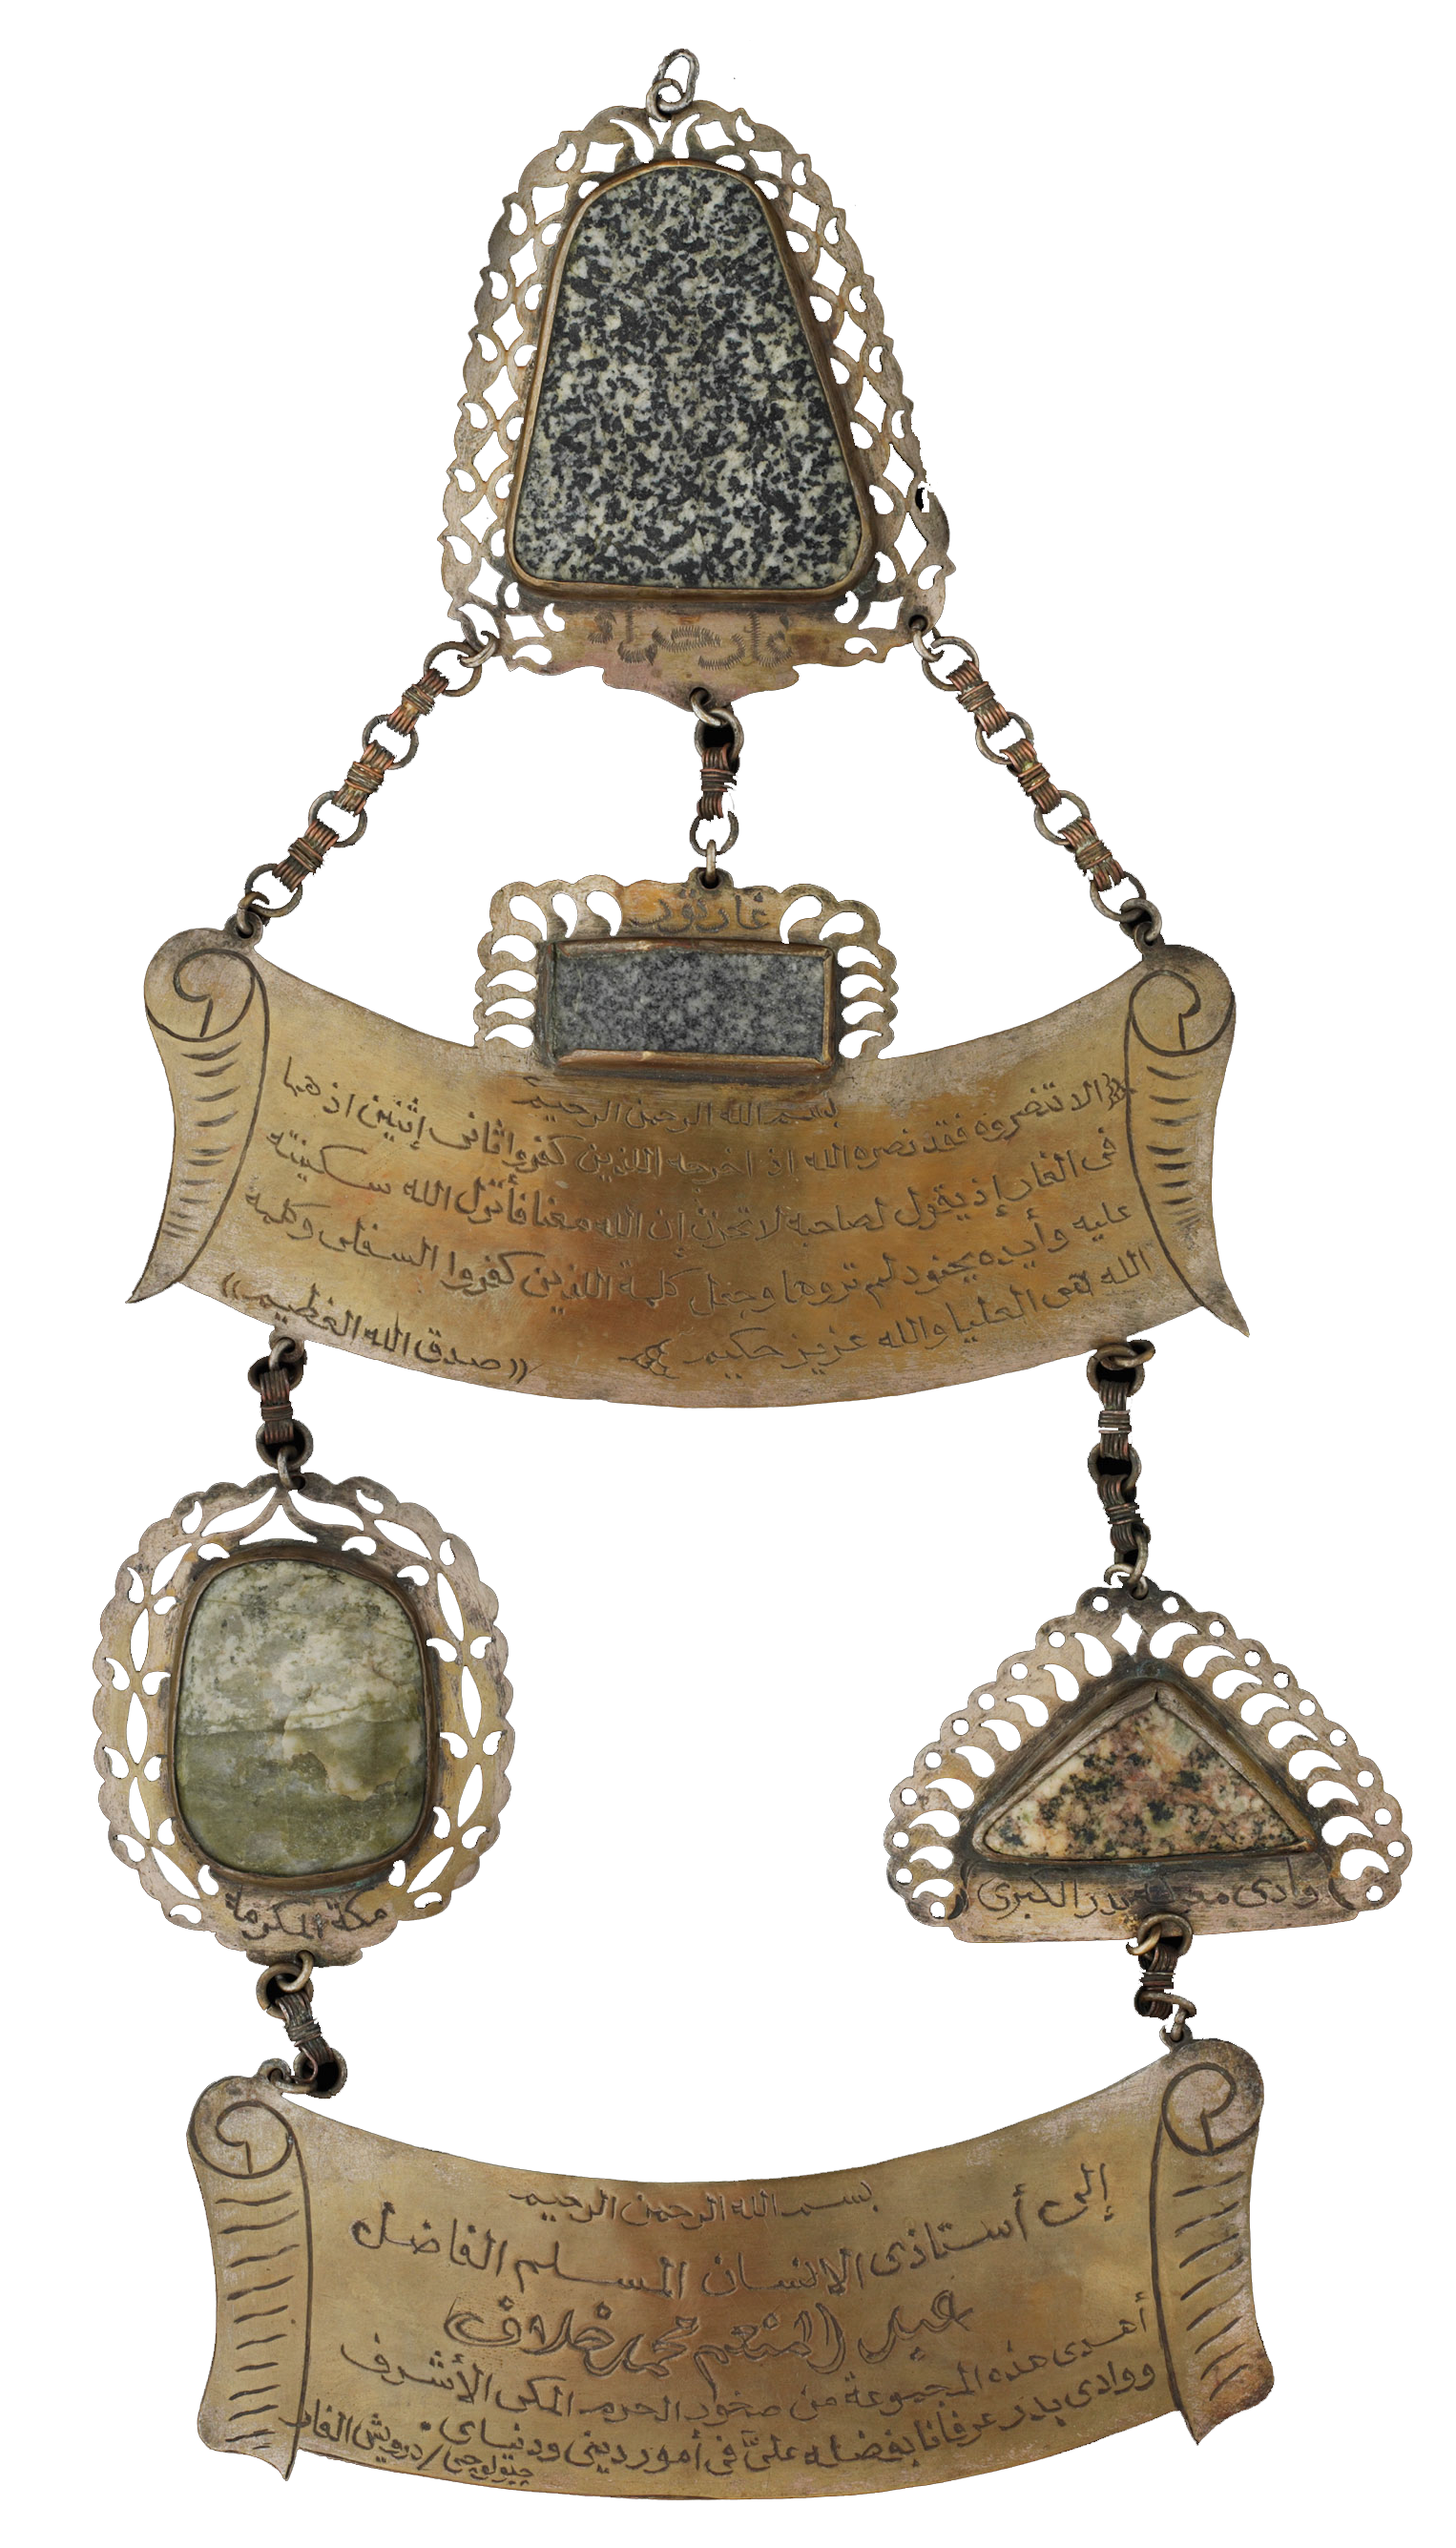 A pendant set with rocks gathered from Mecca and surrounding areas